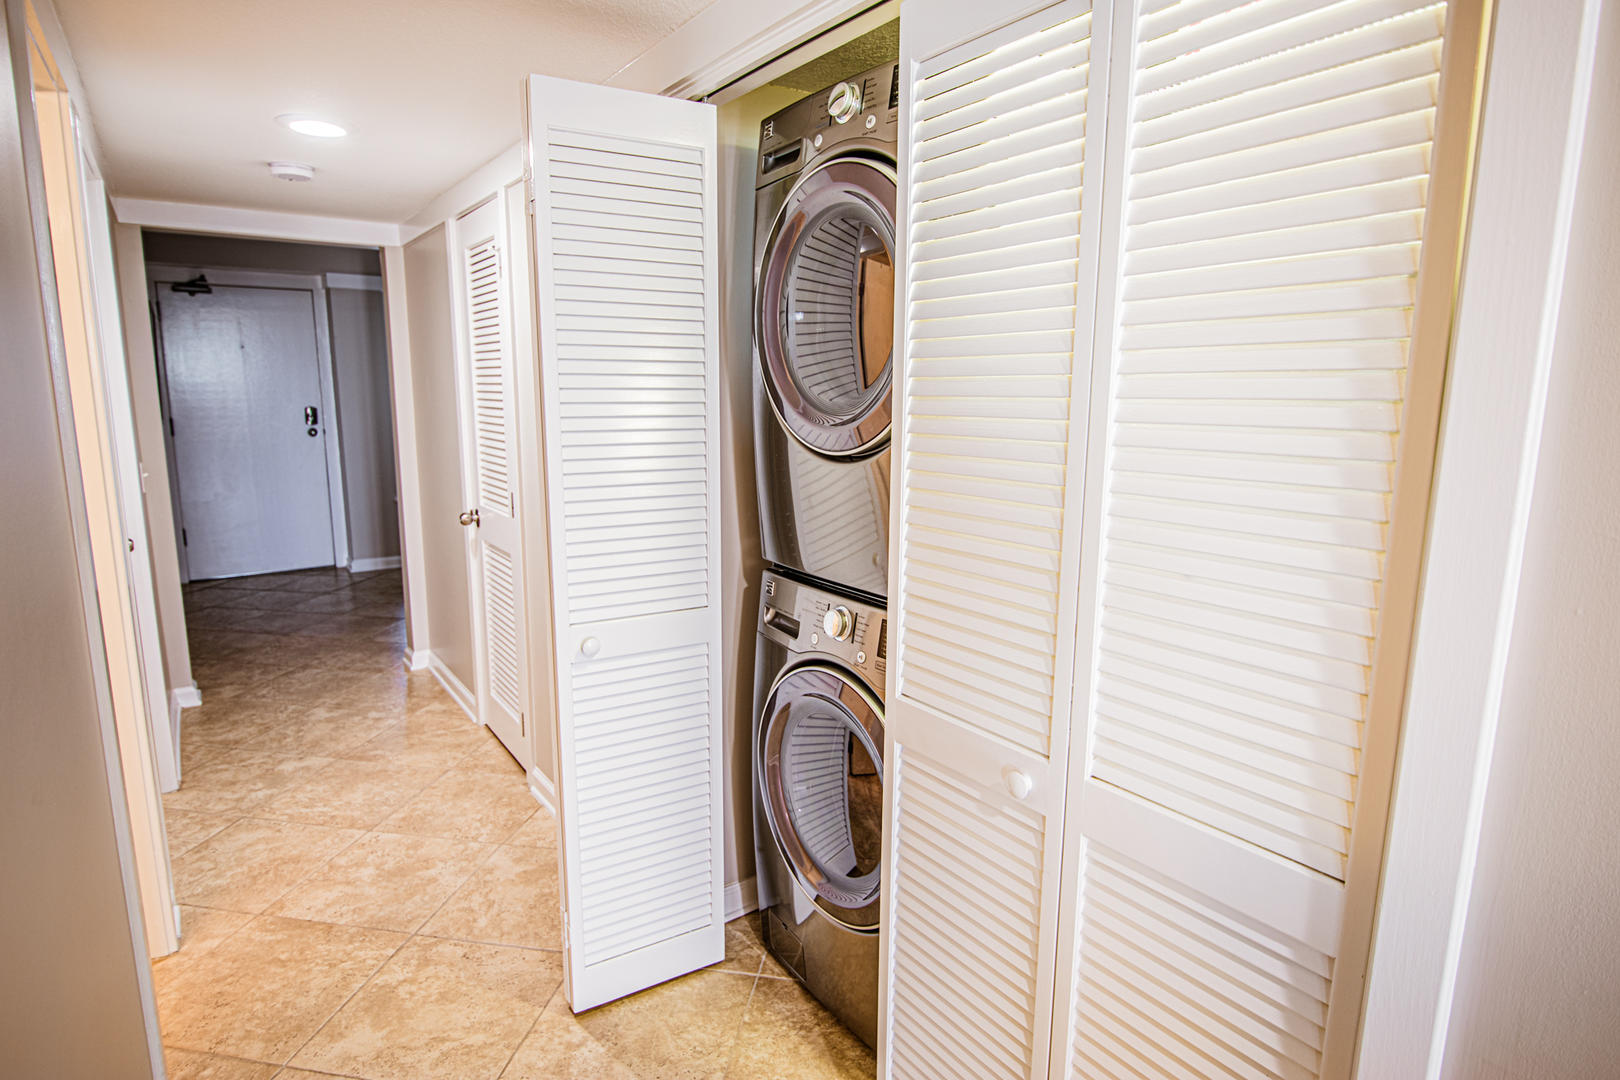 Ocean Creek PP4 - Washer and Dryer